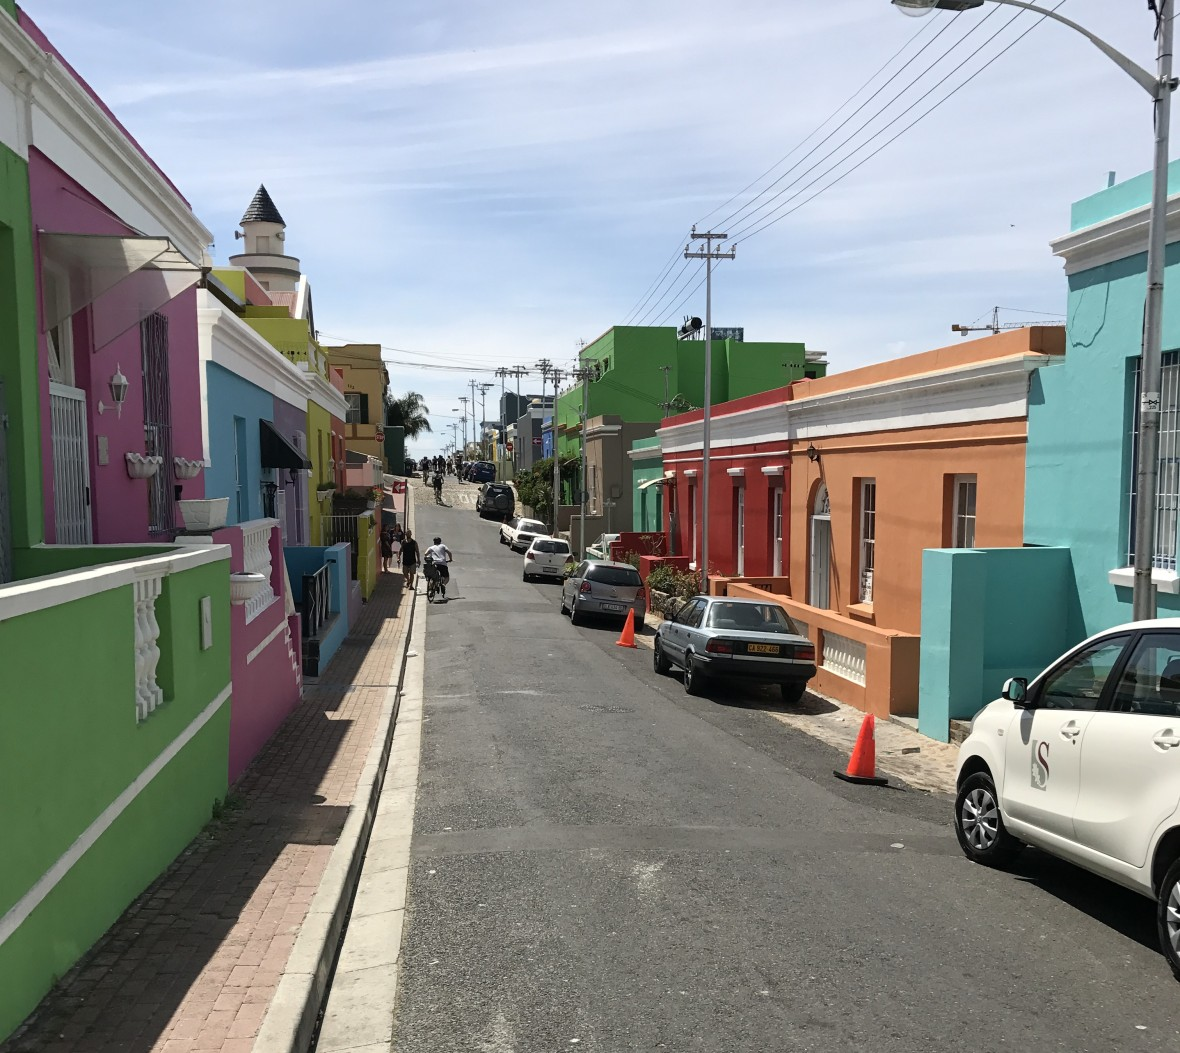 coloured-houses-bo-kaap-cape-town-south-africa